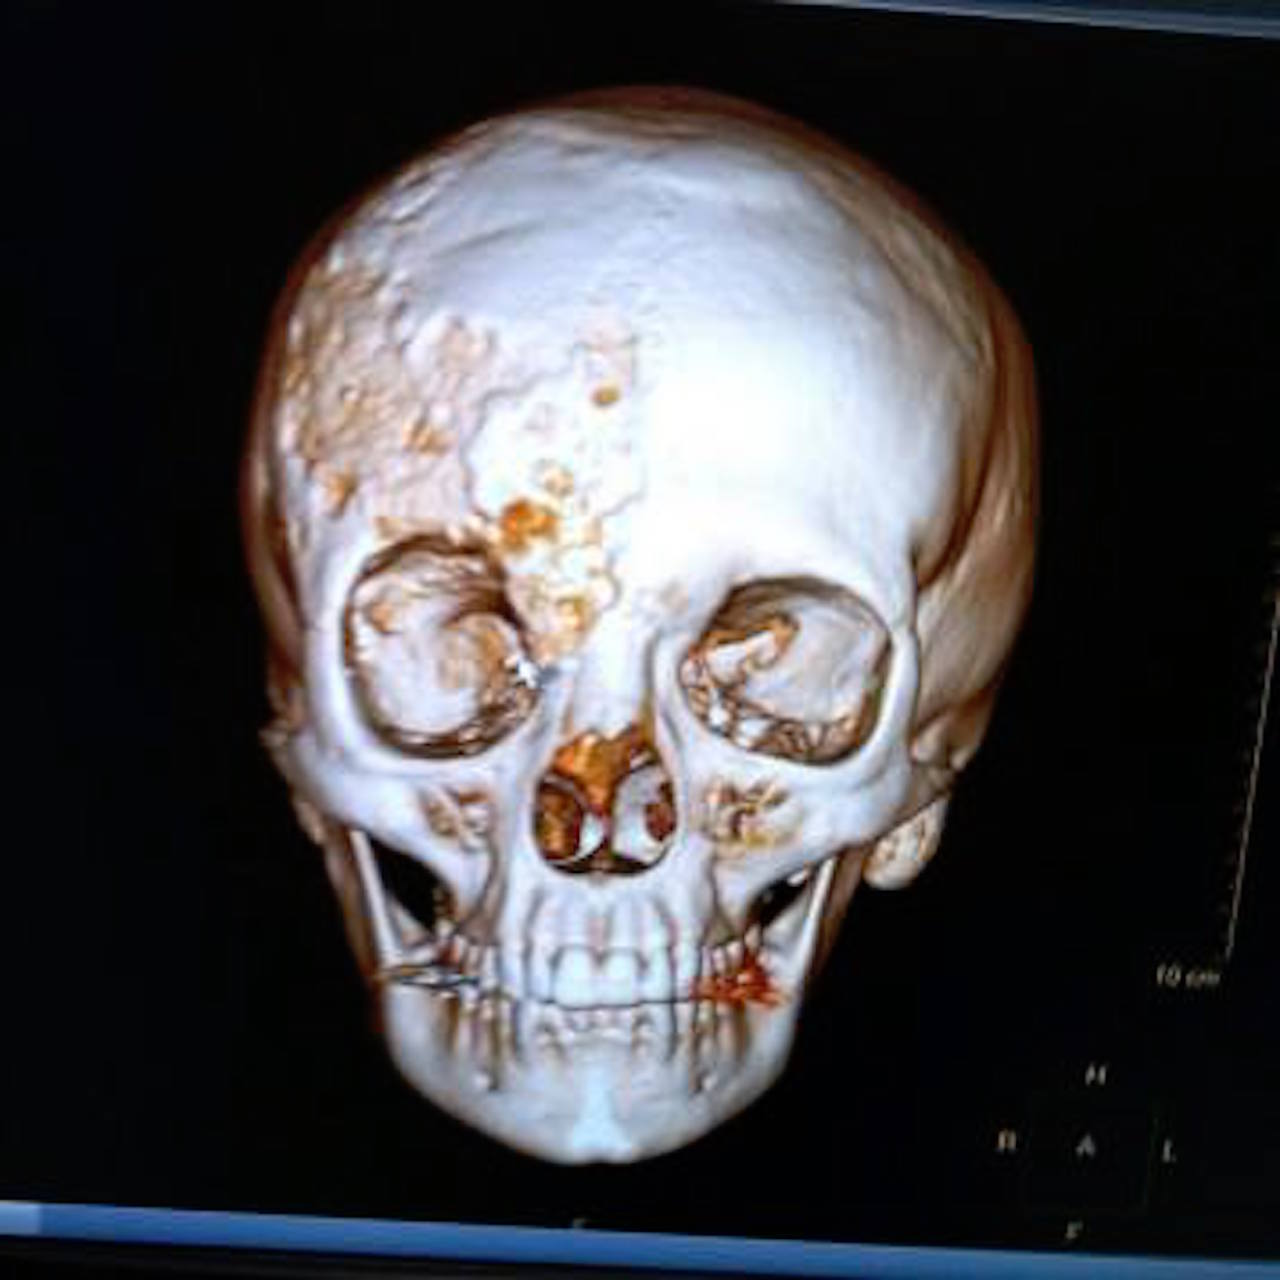 skull of a teen with fibrous dysplasia